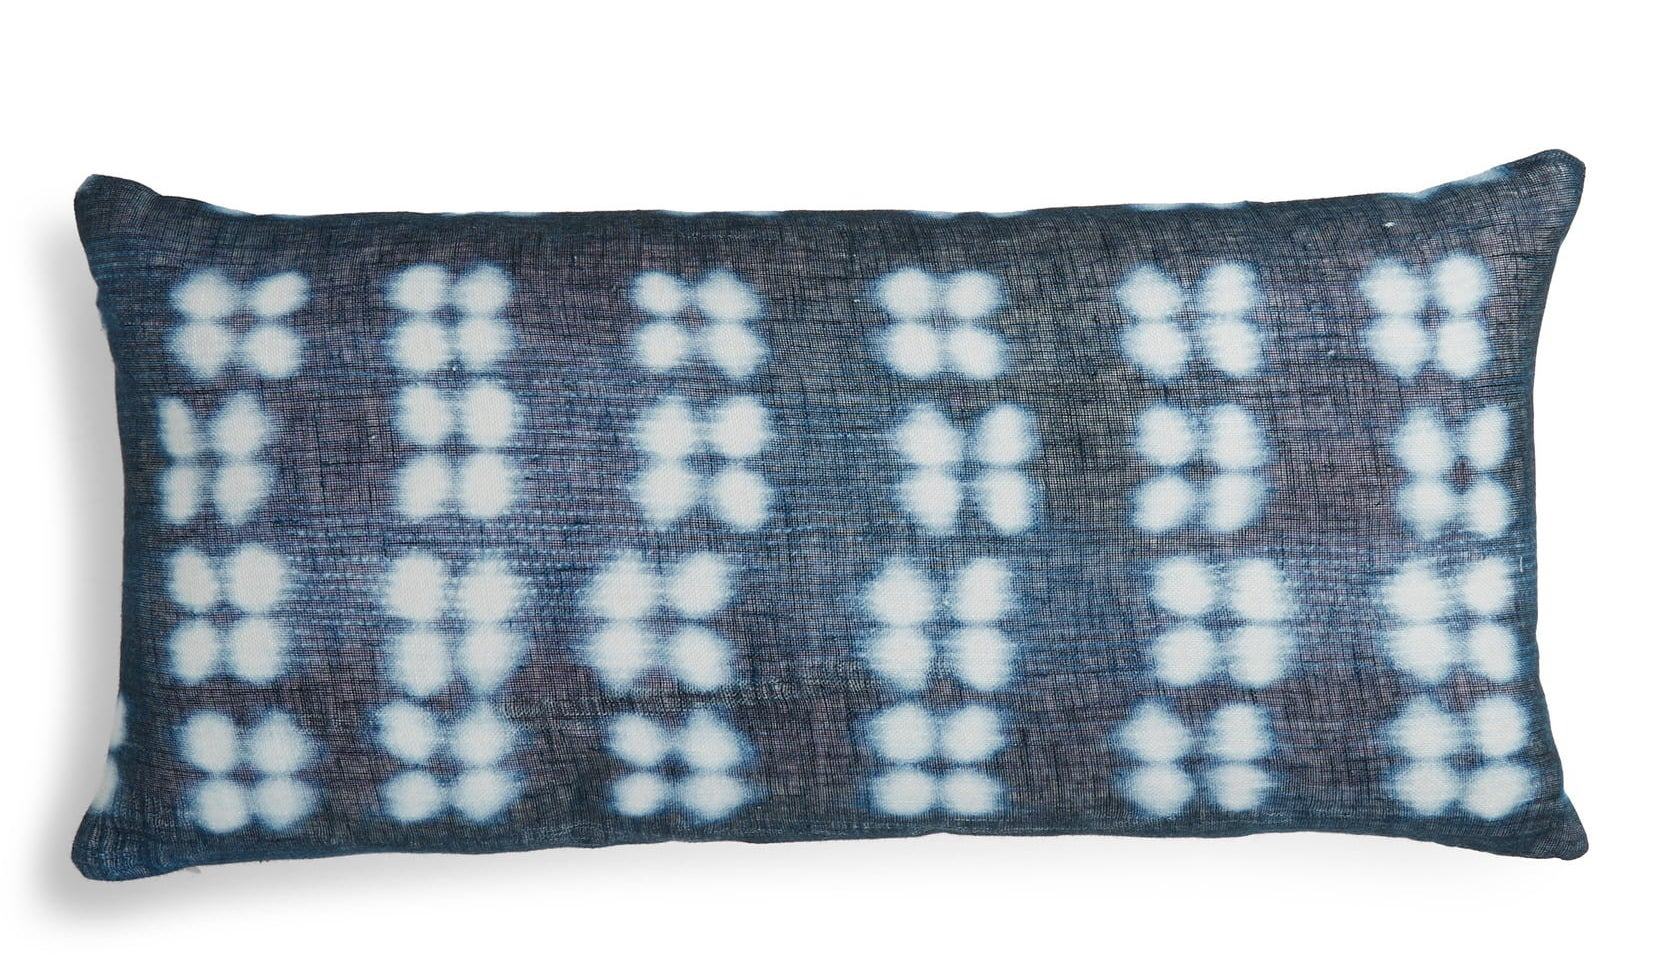 lumbar shaped pillow in navy dyed pattern